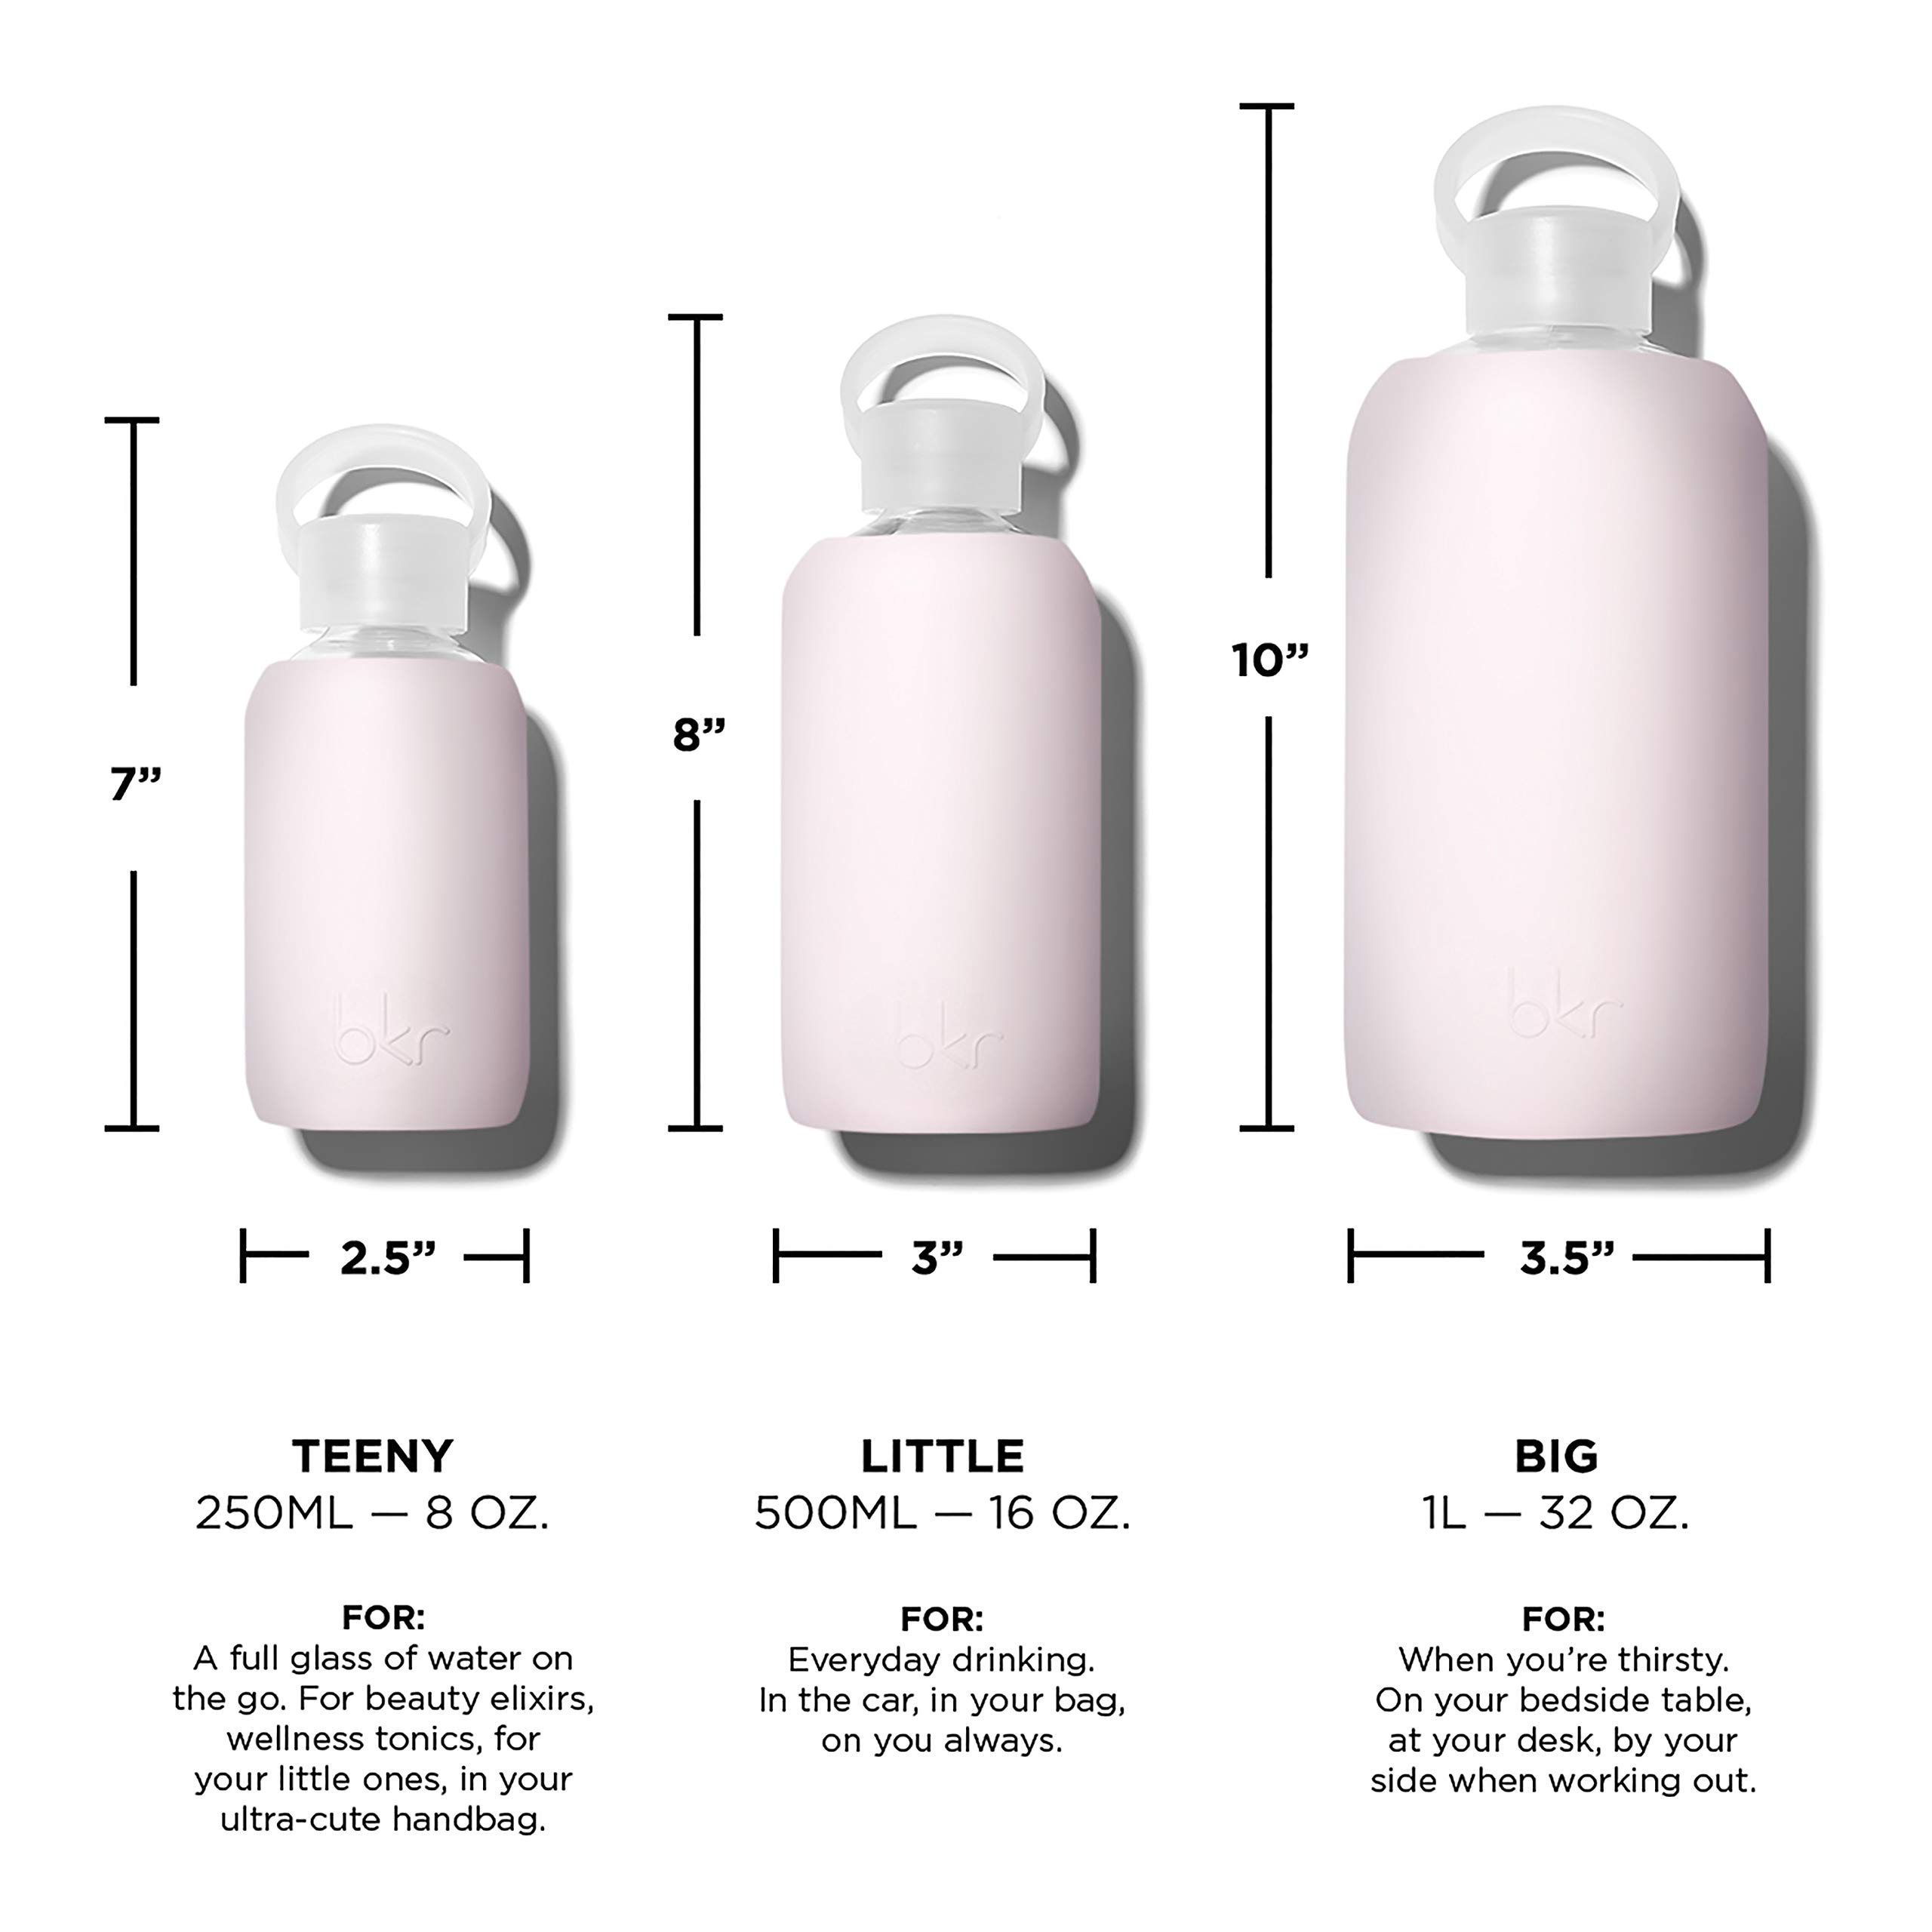 bkr Air Kiss Glass Water Bottle with Smooth Silicone Sleeve for Travel, Narrow Mouth, BPA-Free & Dishwasher Safe, Opaque Socialite Sweetheart Pink, 16 Ounce by bkr (Image #9)